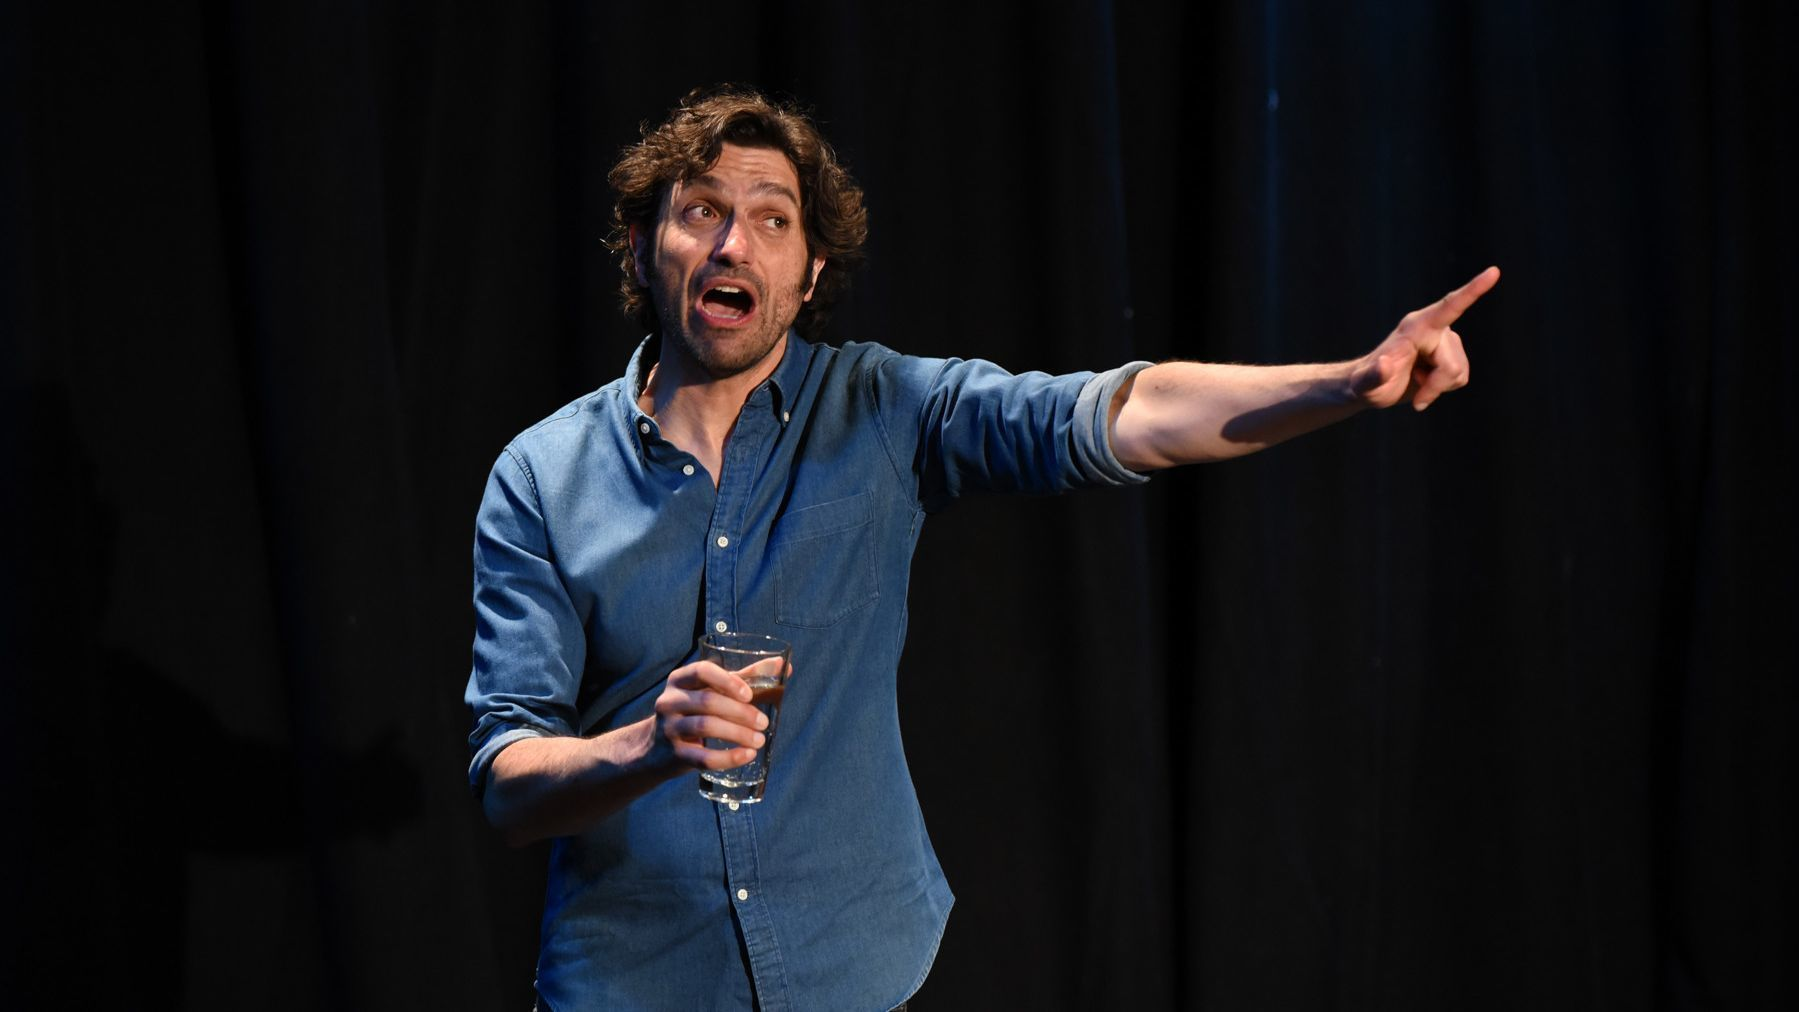 'Mushroom Cure' at the Greenhouse: Laughs and pain in solo show about trying to treat his OCD with psychedelics